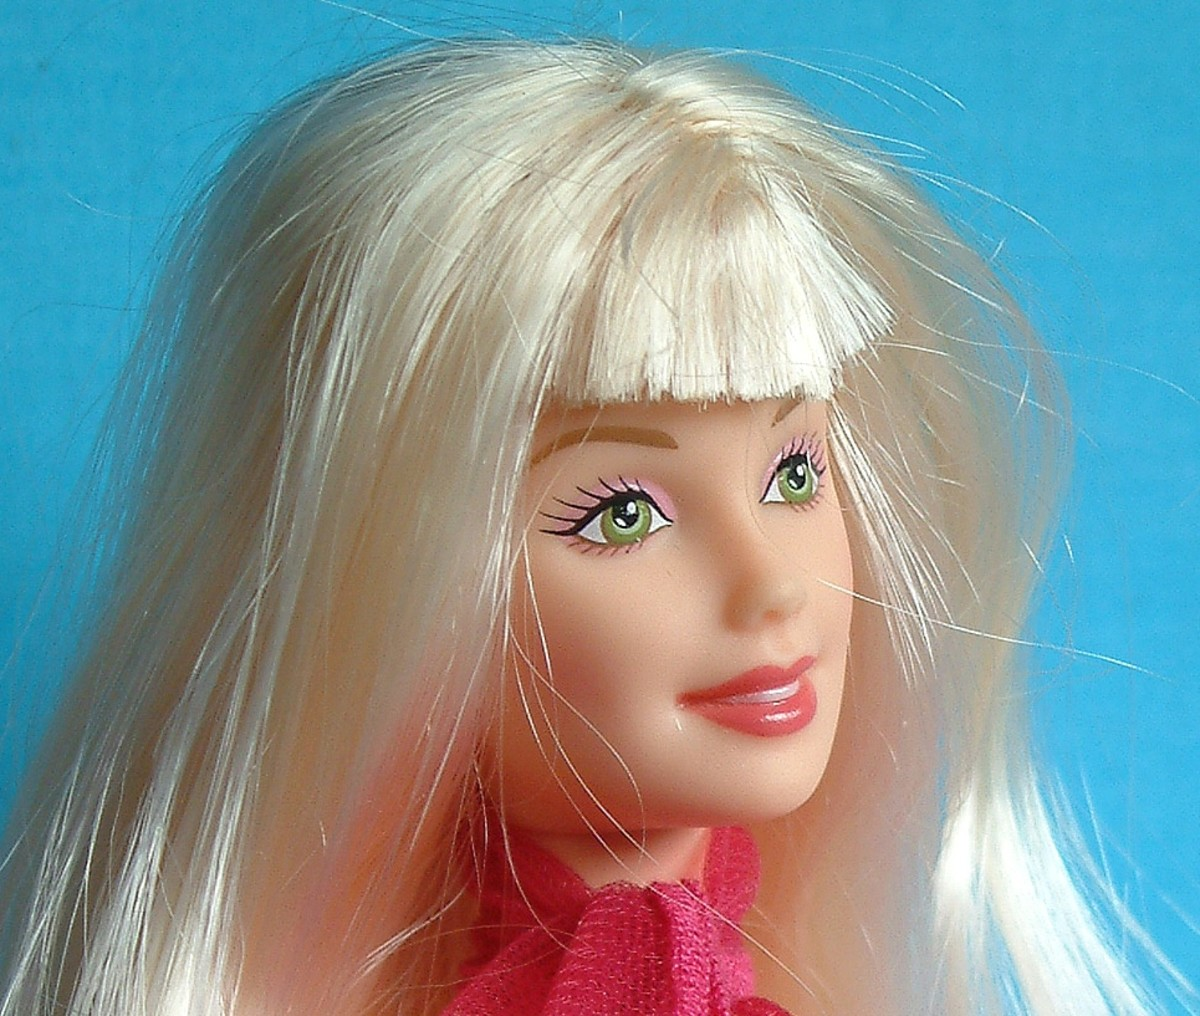 Barbie first appeared in 1959. Created by Ruth Handler and inspired from the earlier German doll called Bild Lilli